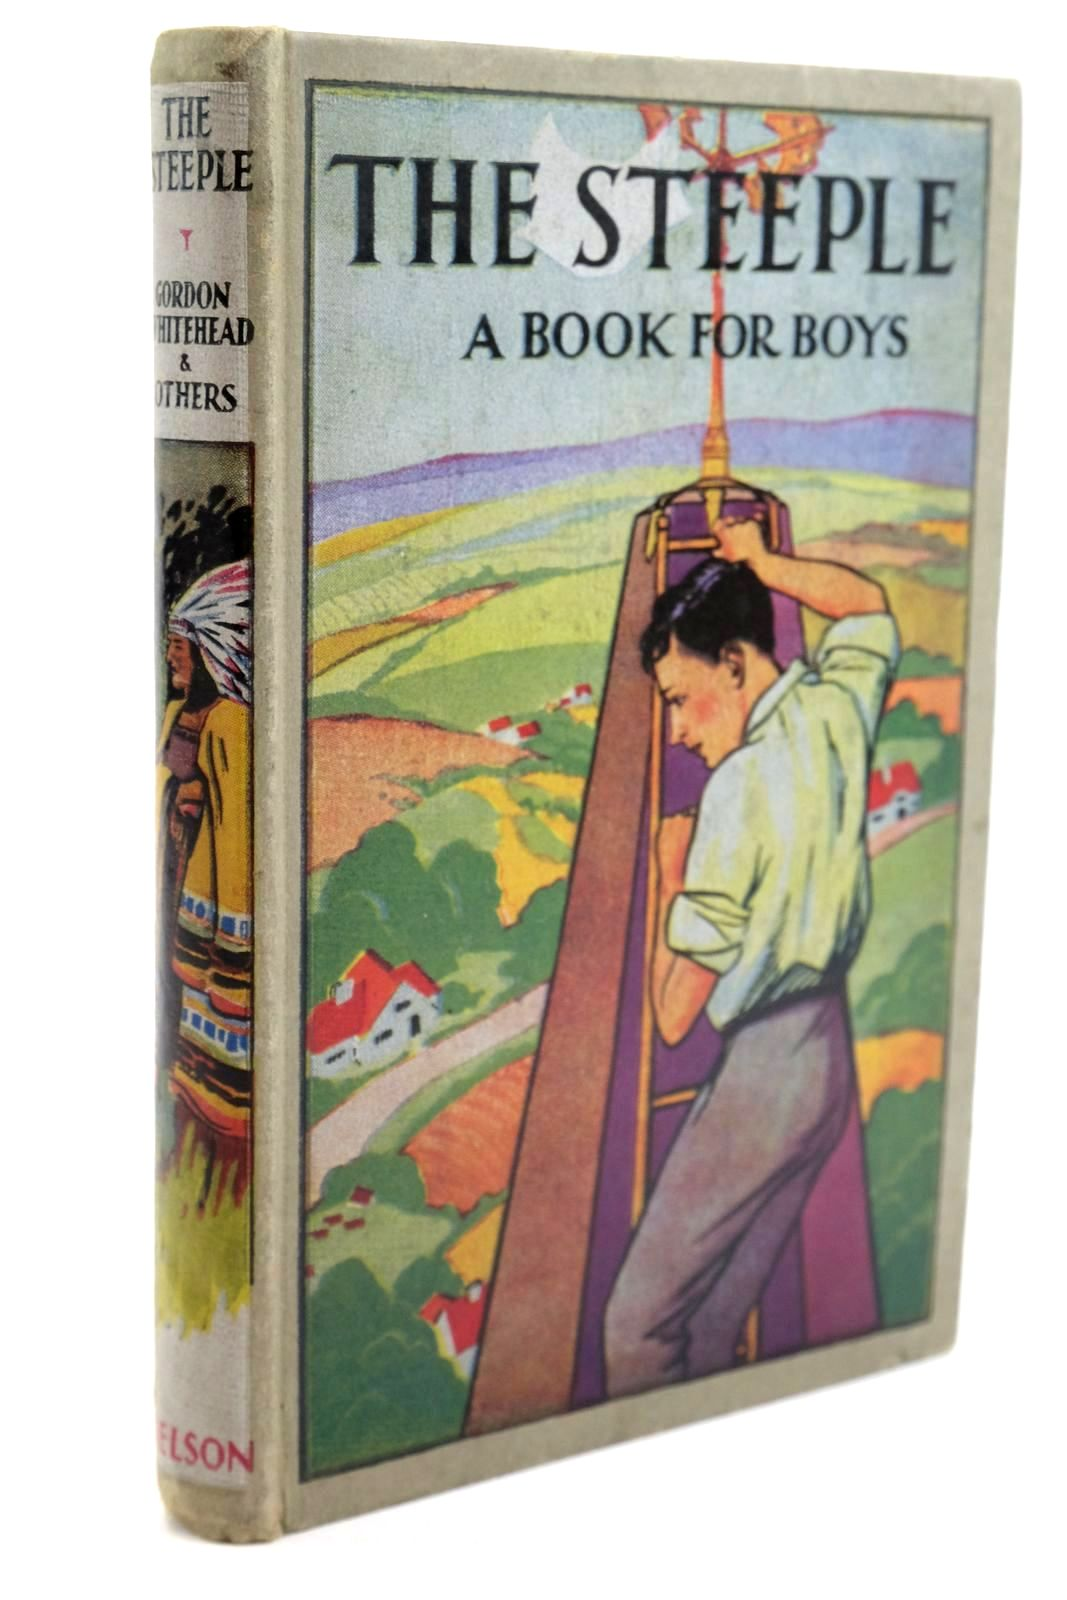 Photo of THE STEEPLE A BOOK FOR BOYS- Stock Number: 1321012